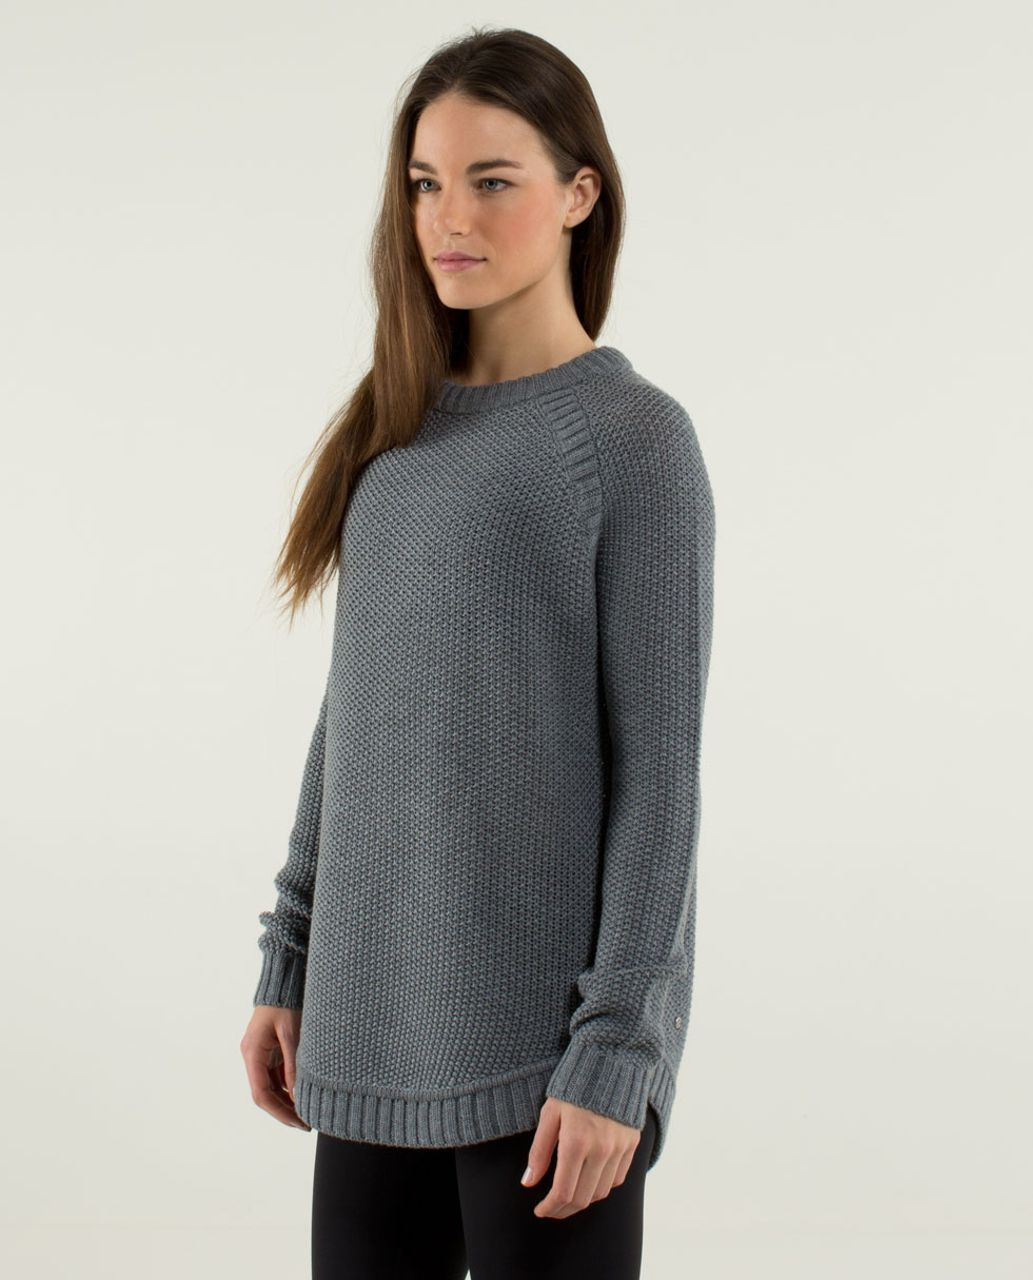 Lululemon sweater Lululemon Dress Lululemon jacket Lululemon -cheap Workout Attire Workout Gear Workout outfits Workouts Fitness outfits Athletic Clothes Hs Sports Women's Sporty Fashion Wraps Shoes Sneakers Exercise Clothes Latest Fashion Style Jackets Fitness gear Training Equipment Workout Equipment Ejercicio Work Outs Workout Clothing.